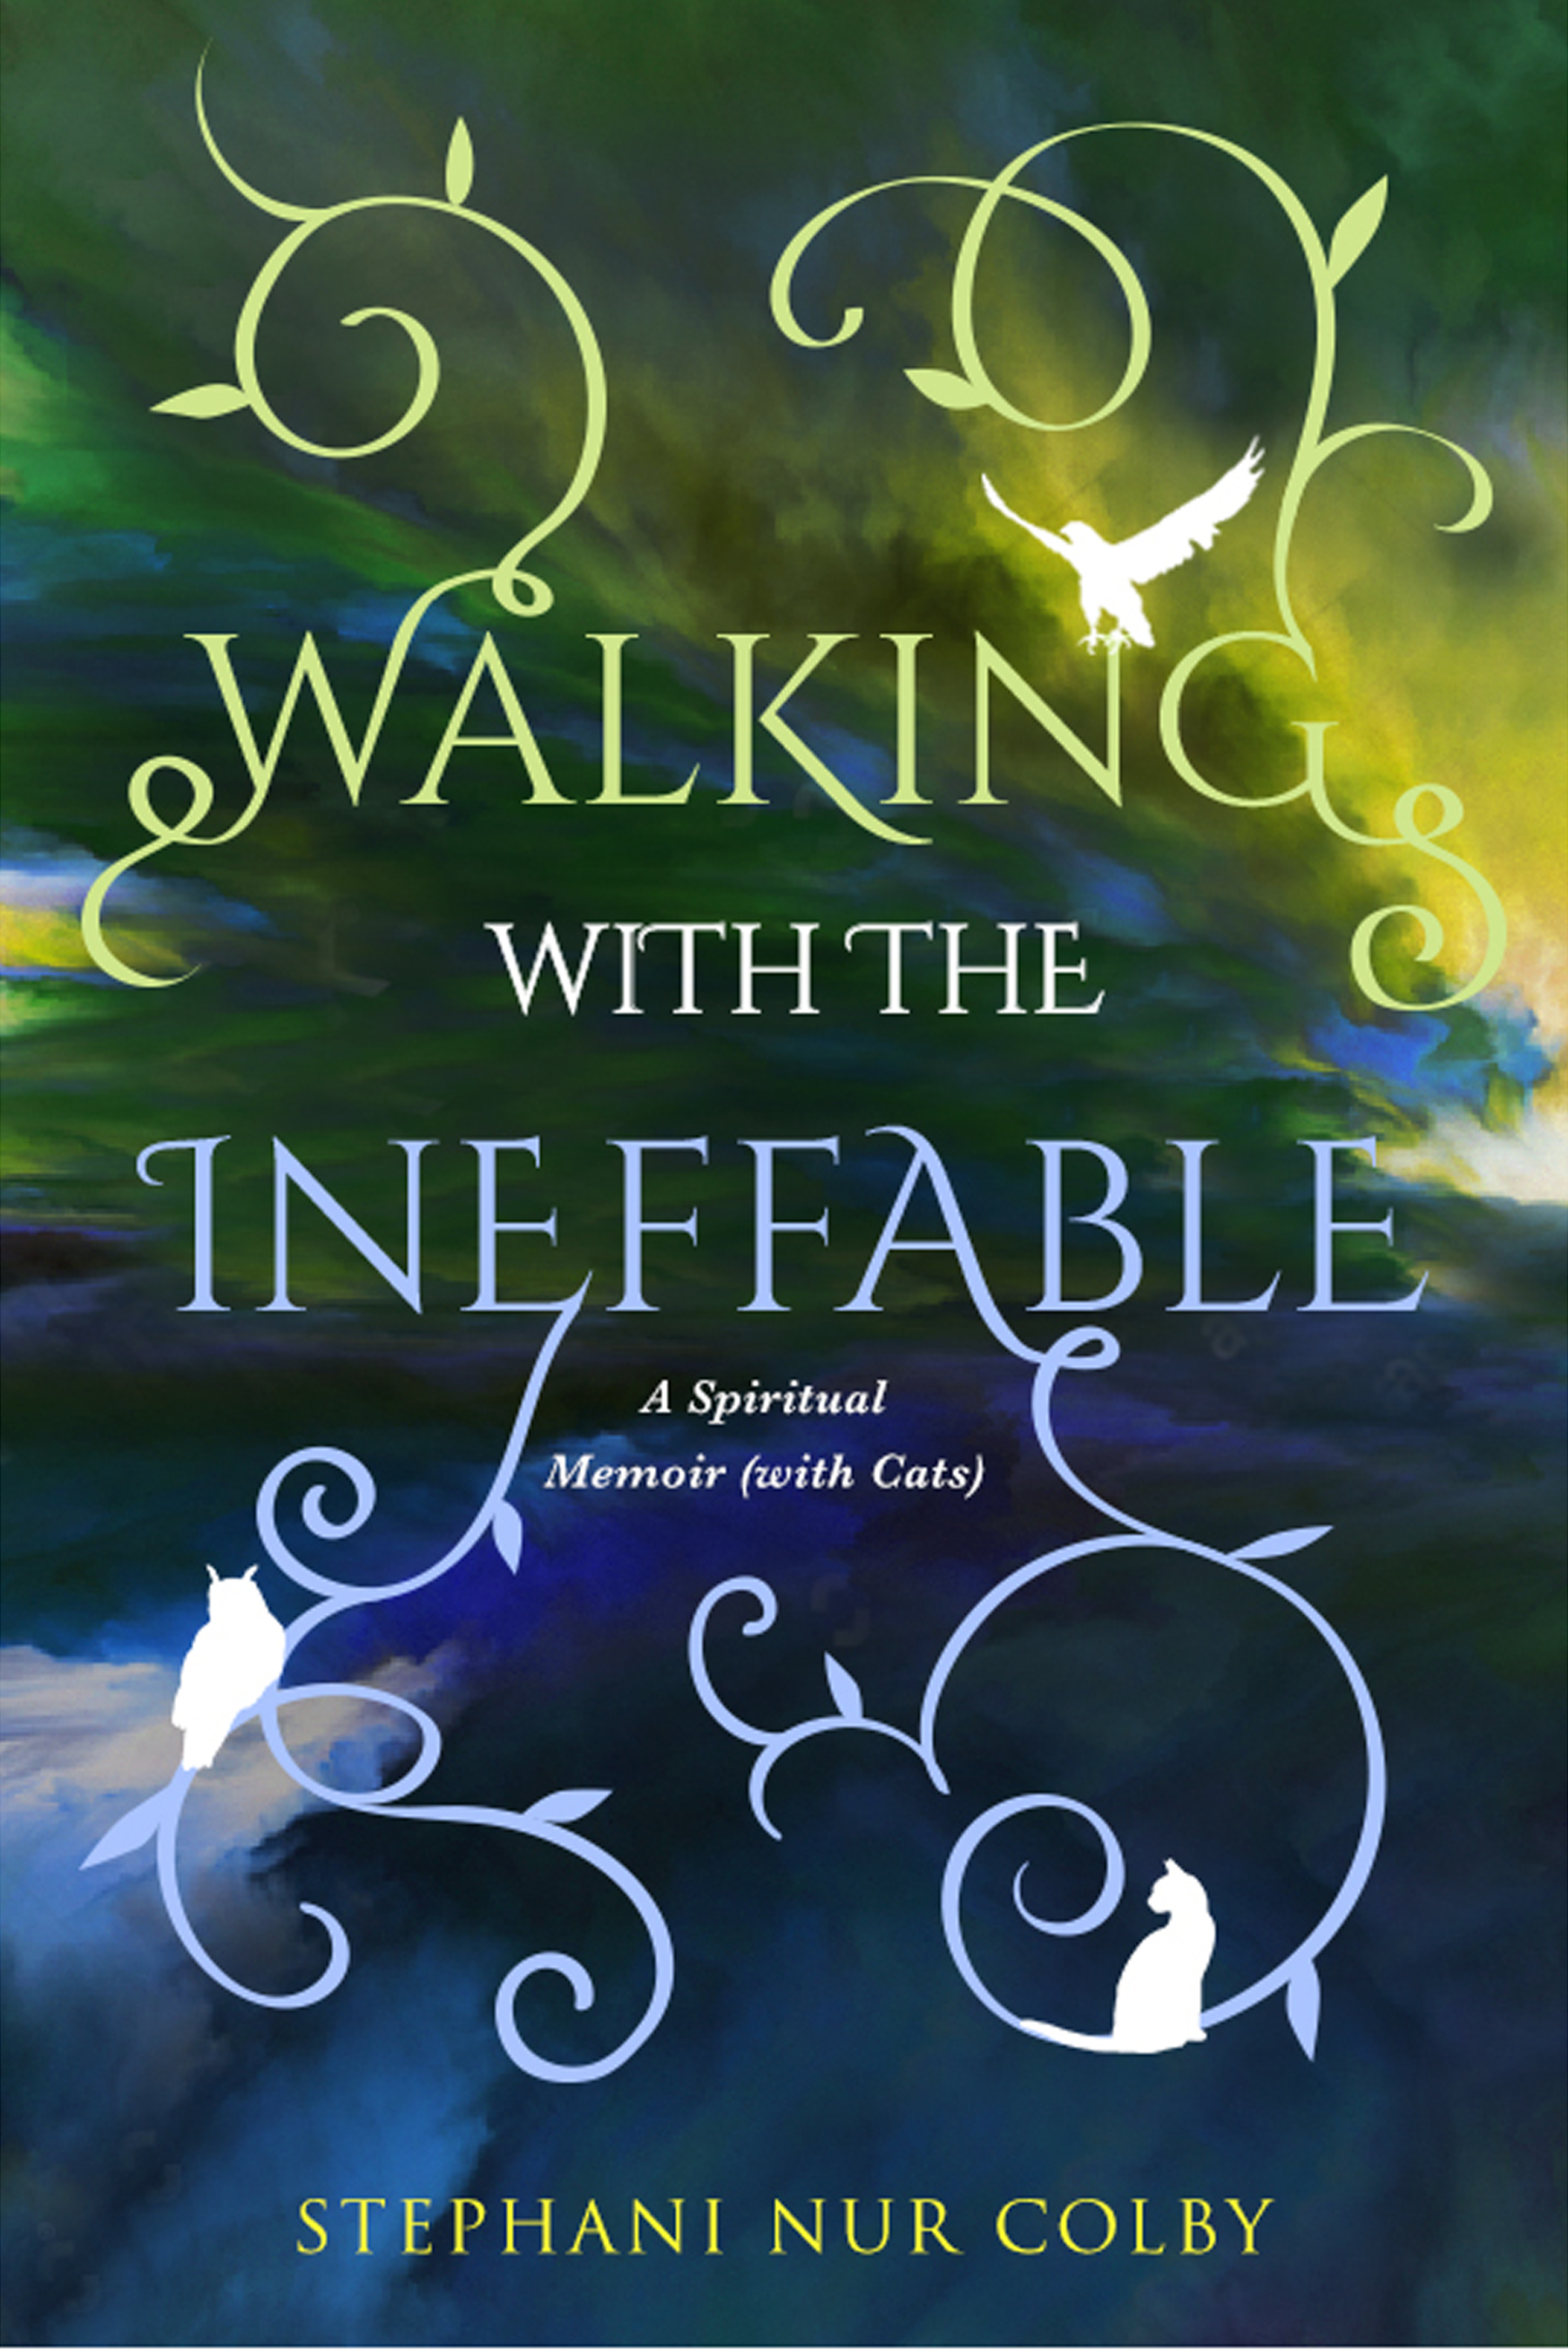 Walking with the Ineffable